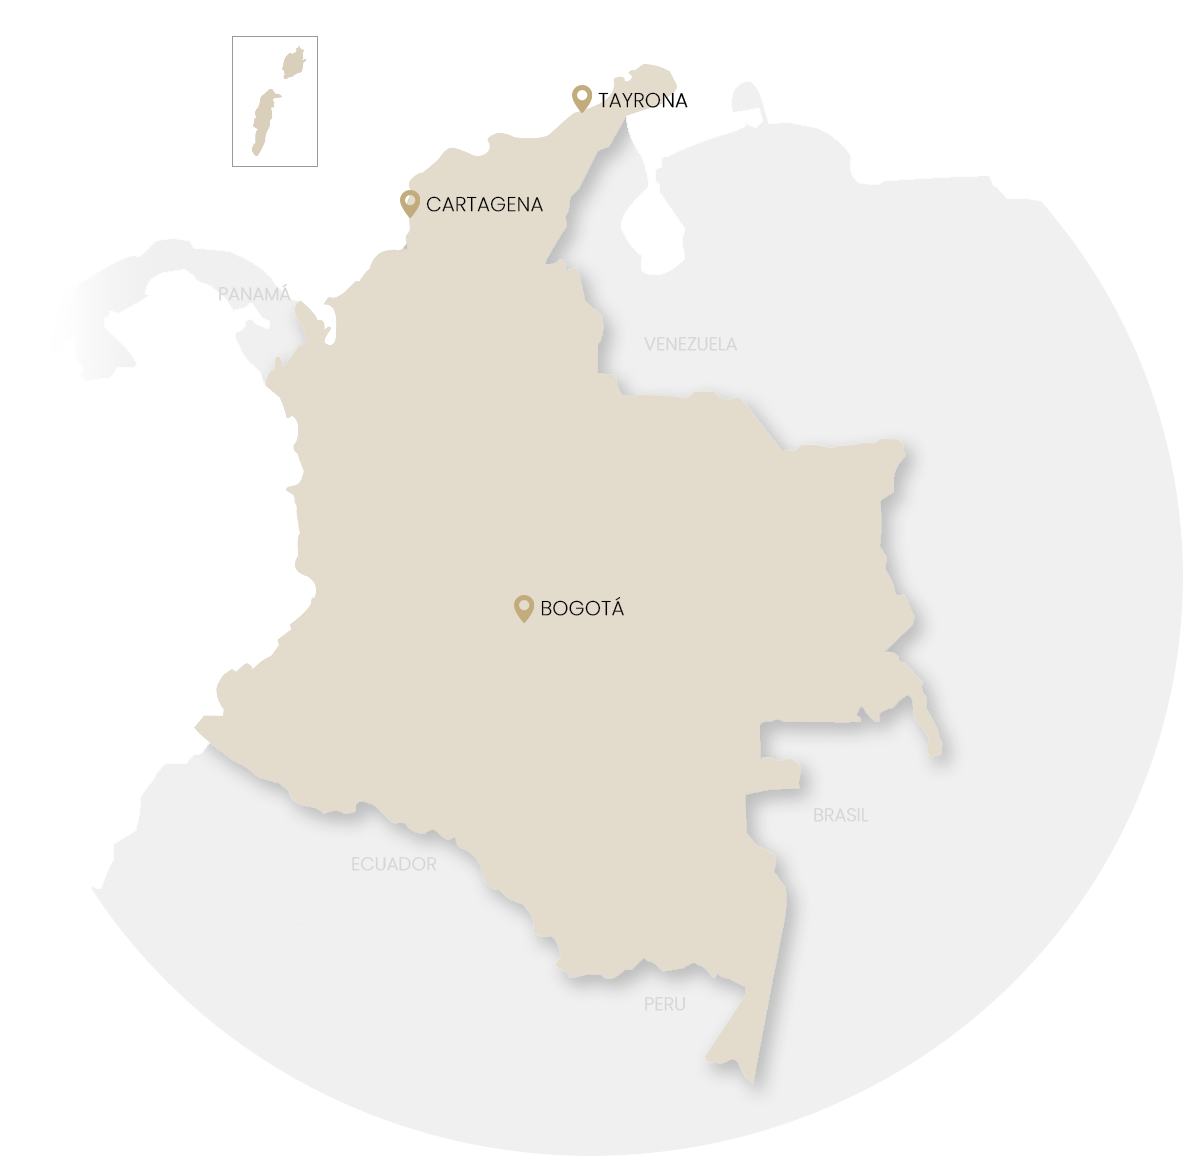 Tour Esencia de Colombia